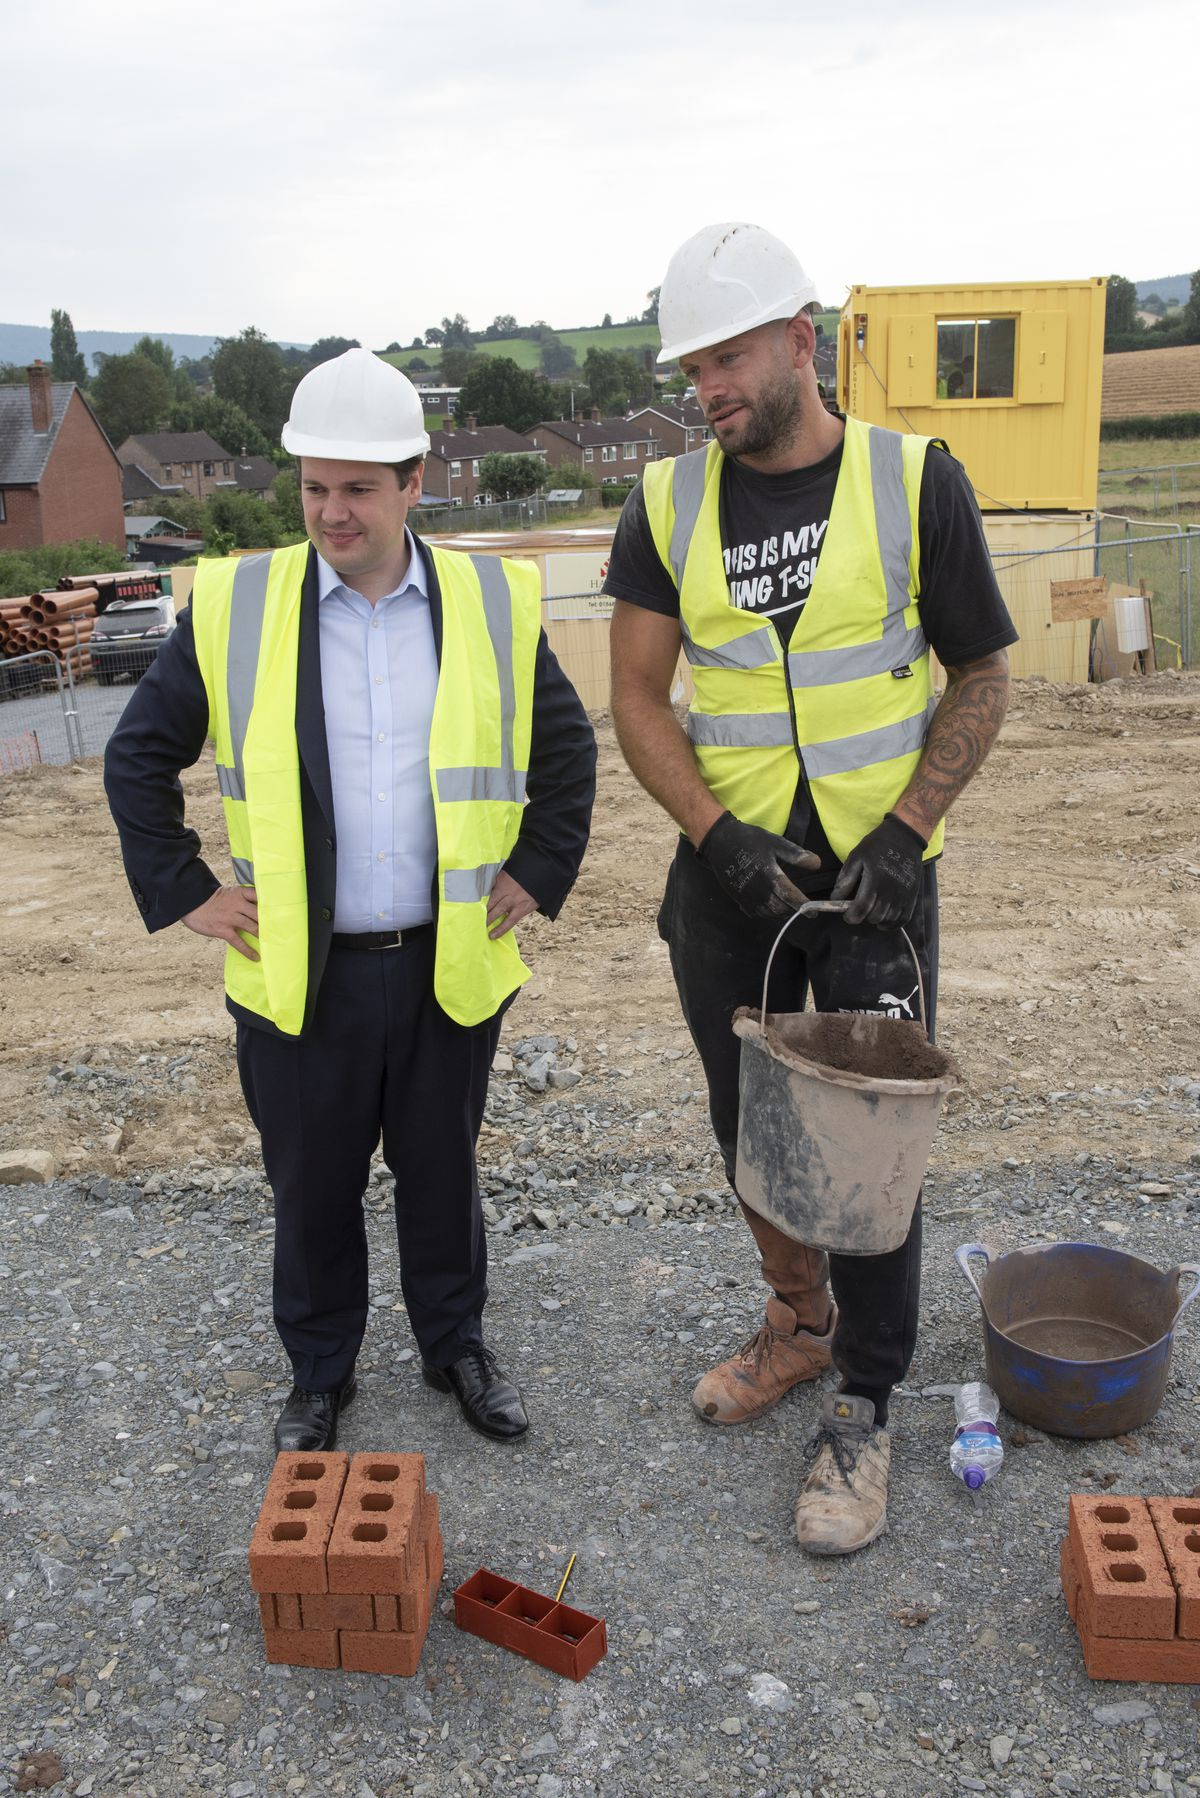 Secretary of State for Housing, Communities and Local Government, Robert Jenrick MP with a bricklayer from contractor J. Harper